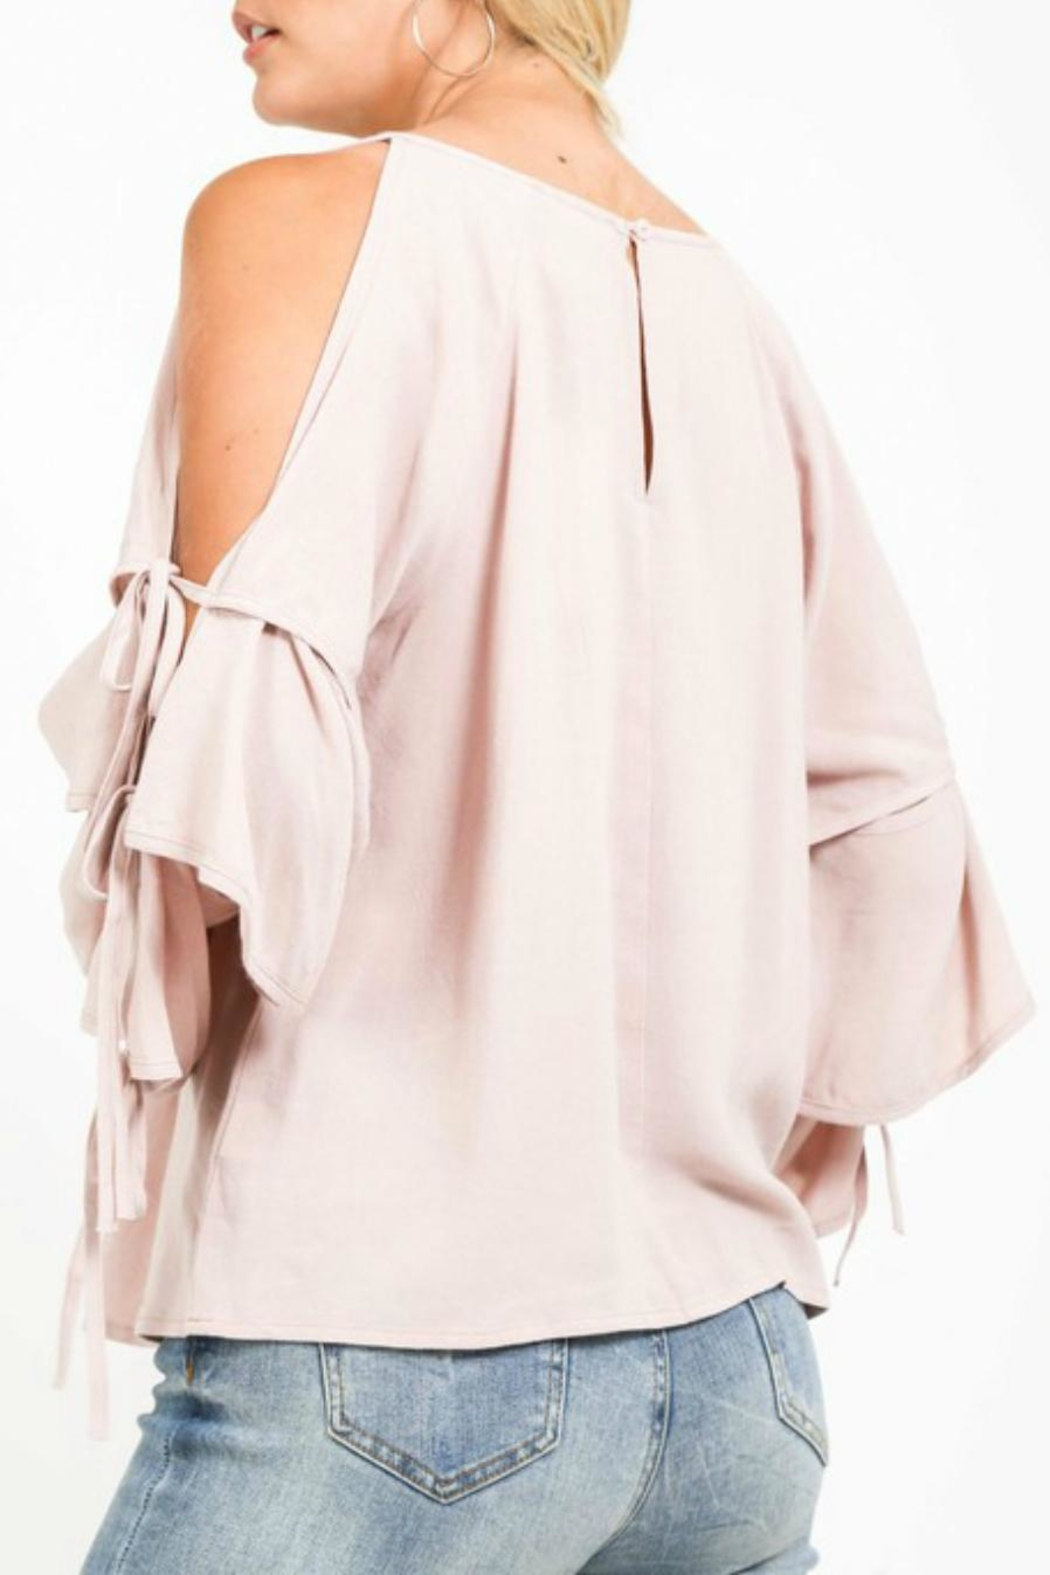 LoveRiche Creamy Cold-Shoulder Layer-Sleeve - Back Cropped Image